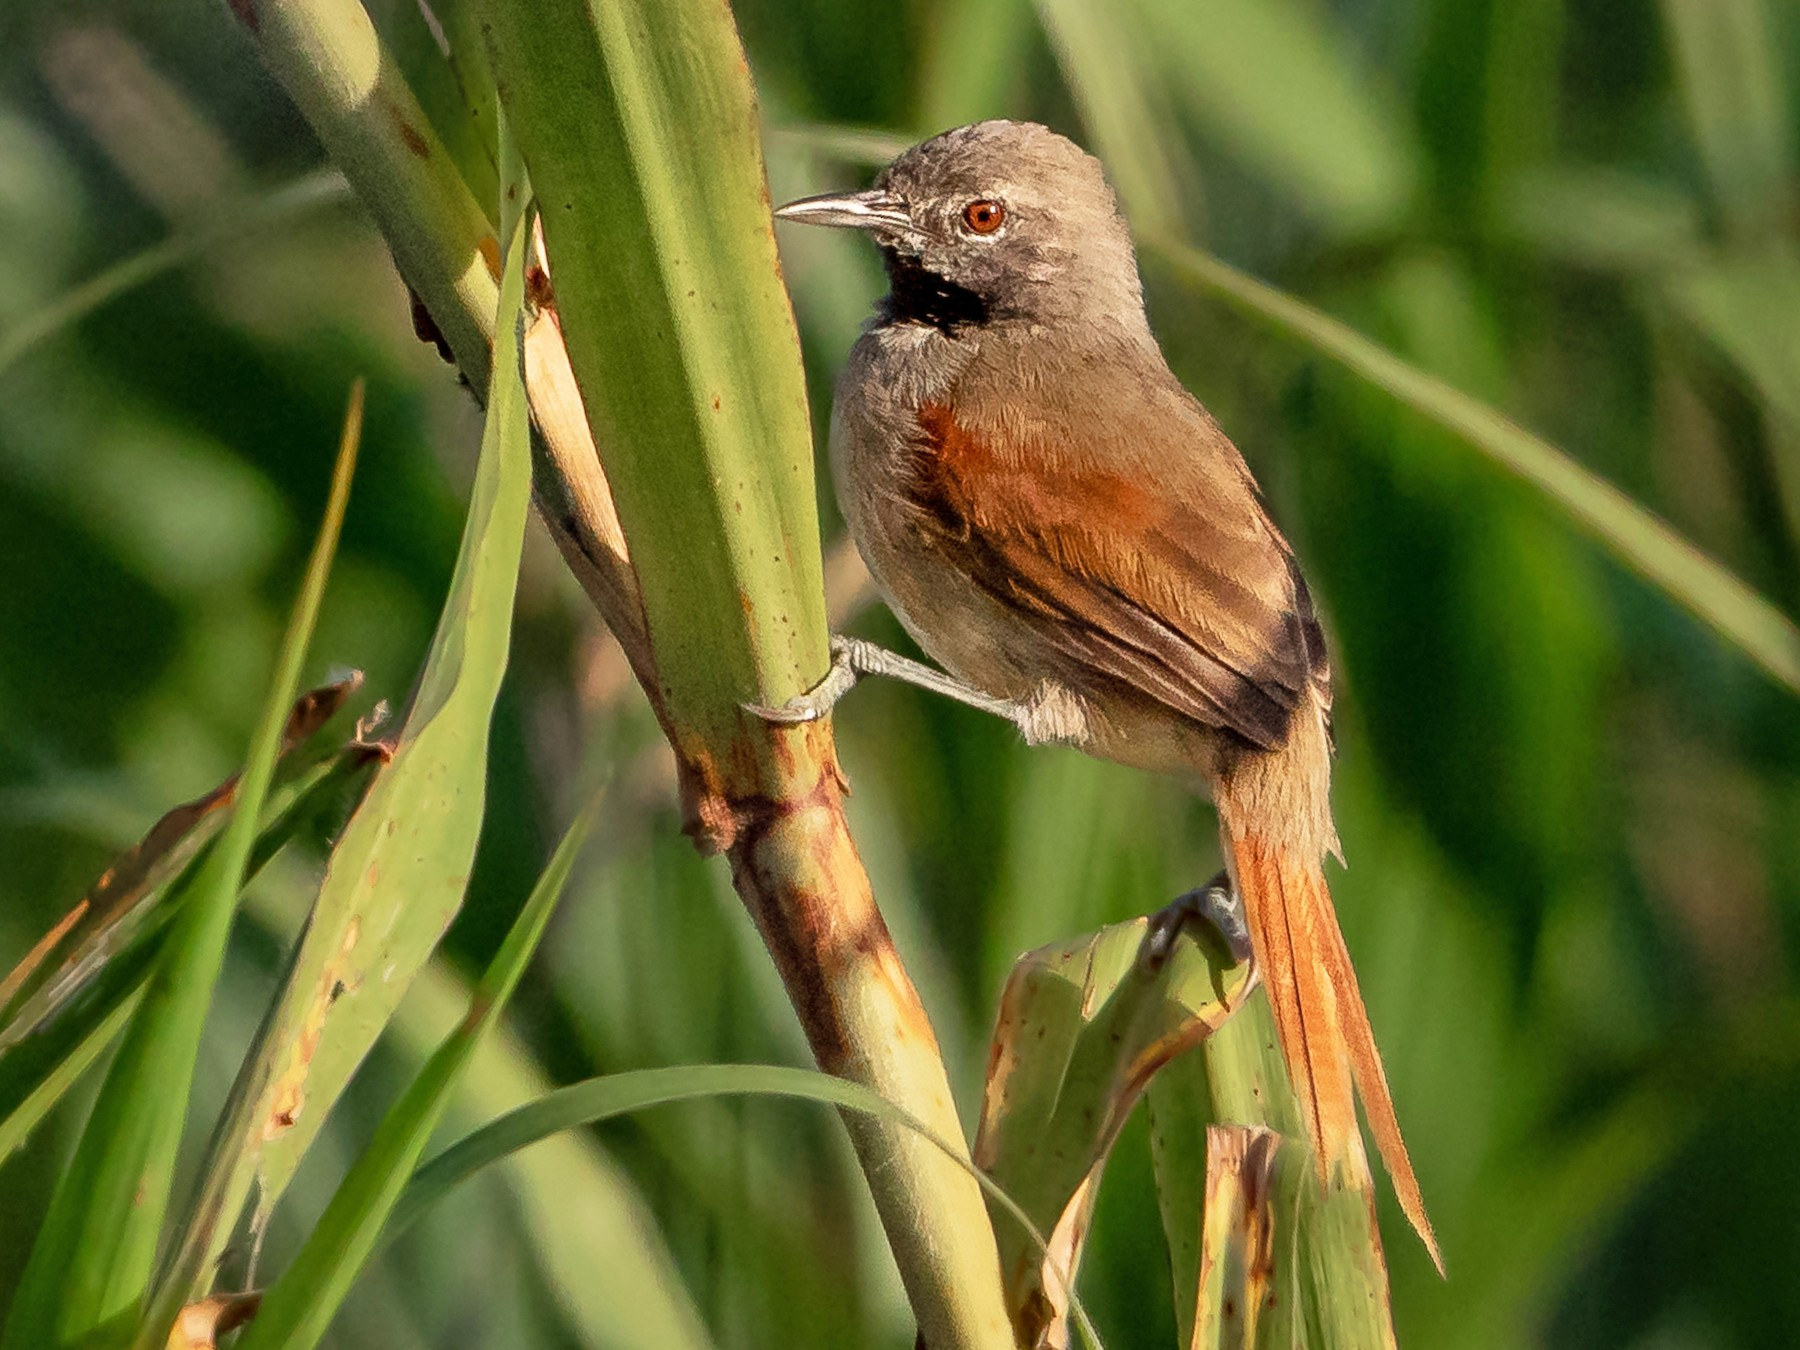 White-bellied Spinetail - Héctor Bottai